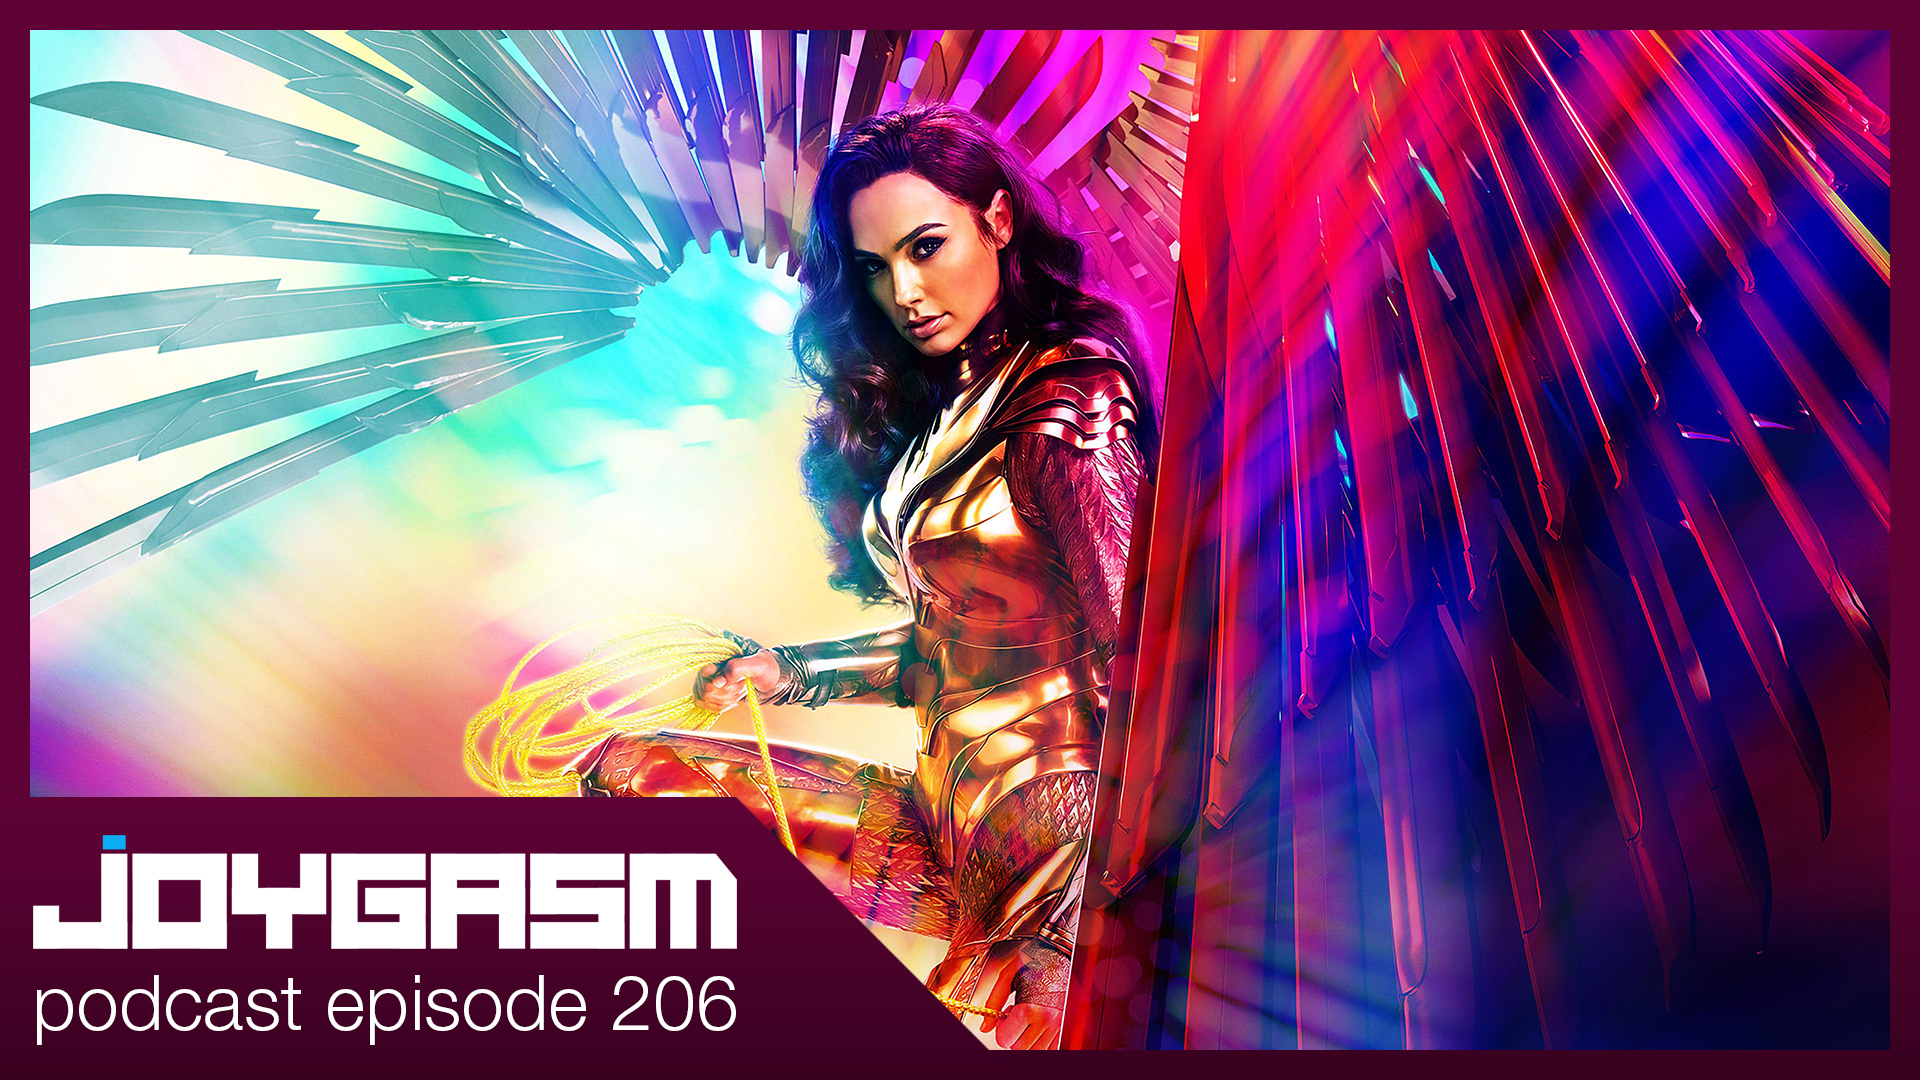 Ep. 206: Wonder Woman 1984 Movie Review